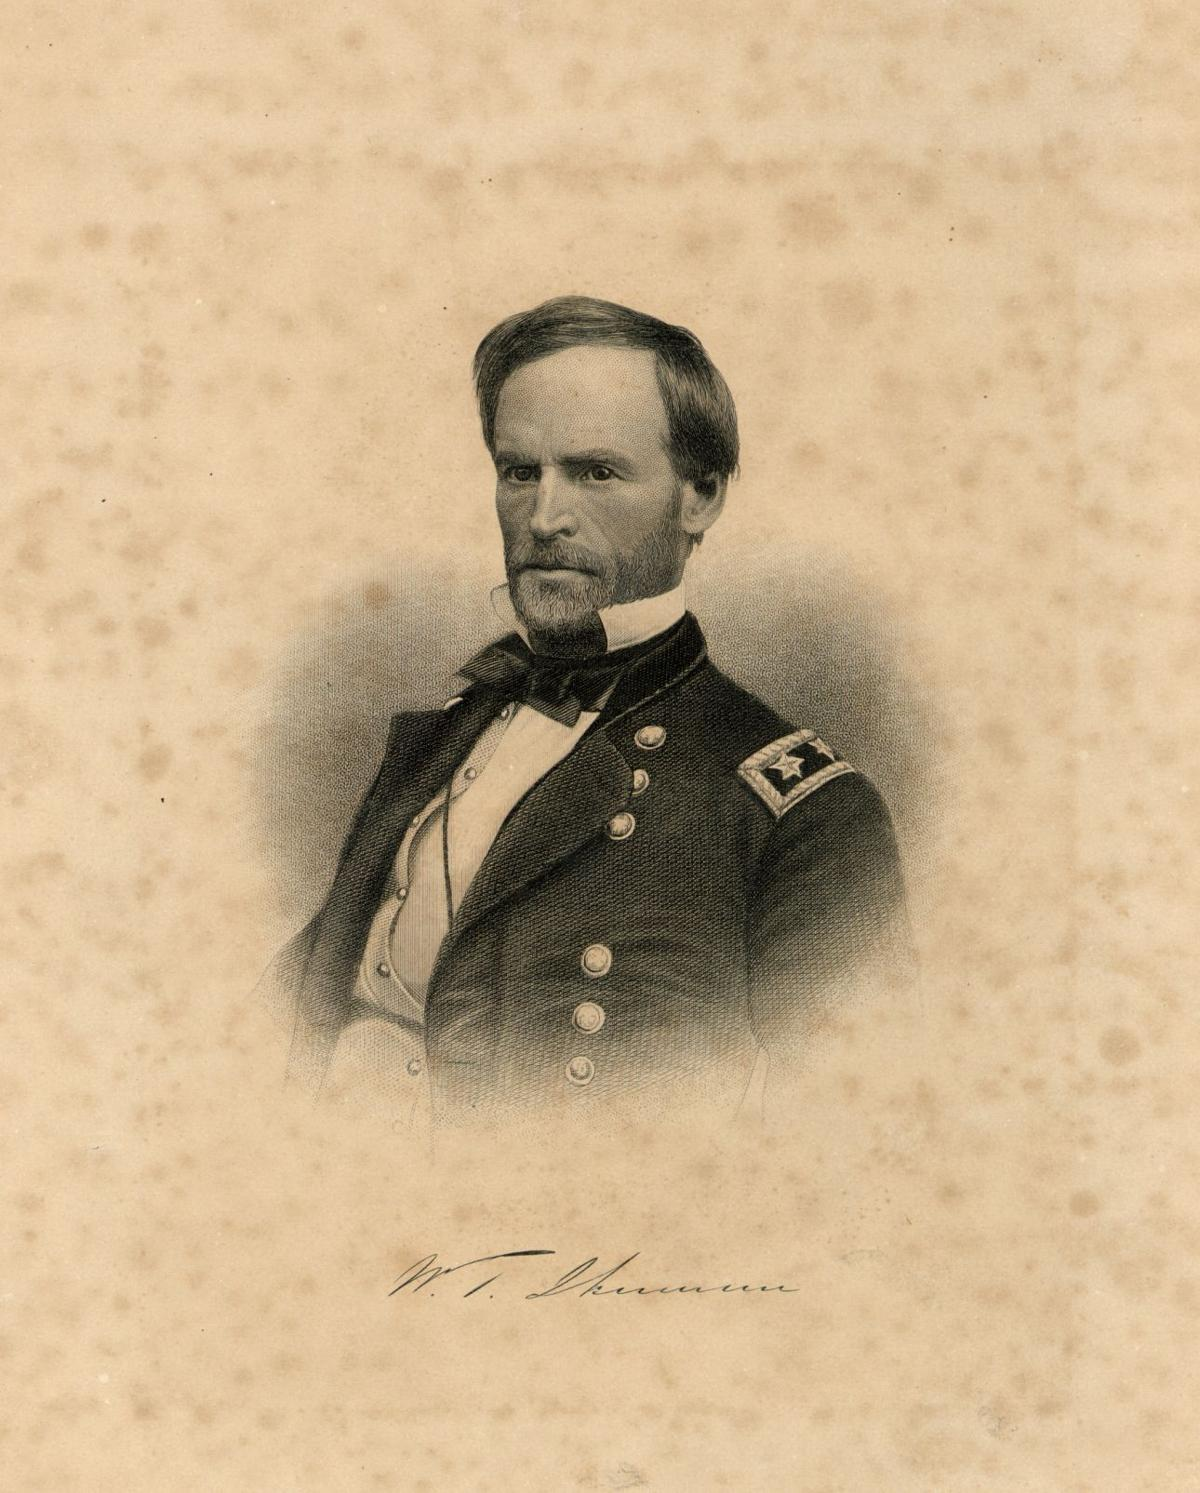 WilliamTecumsehSherman1866.jpg (copy)